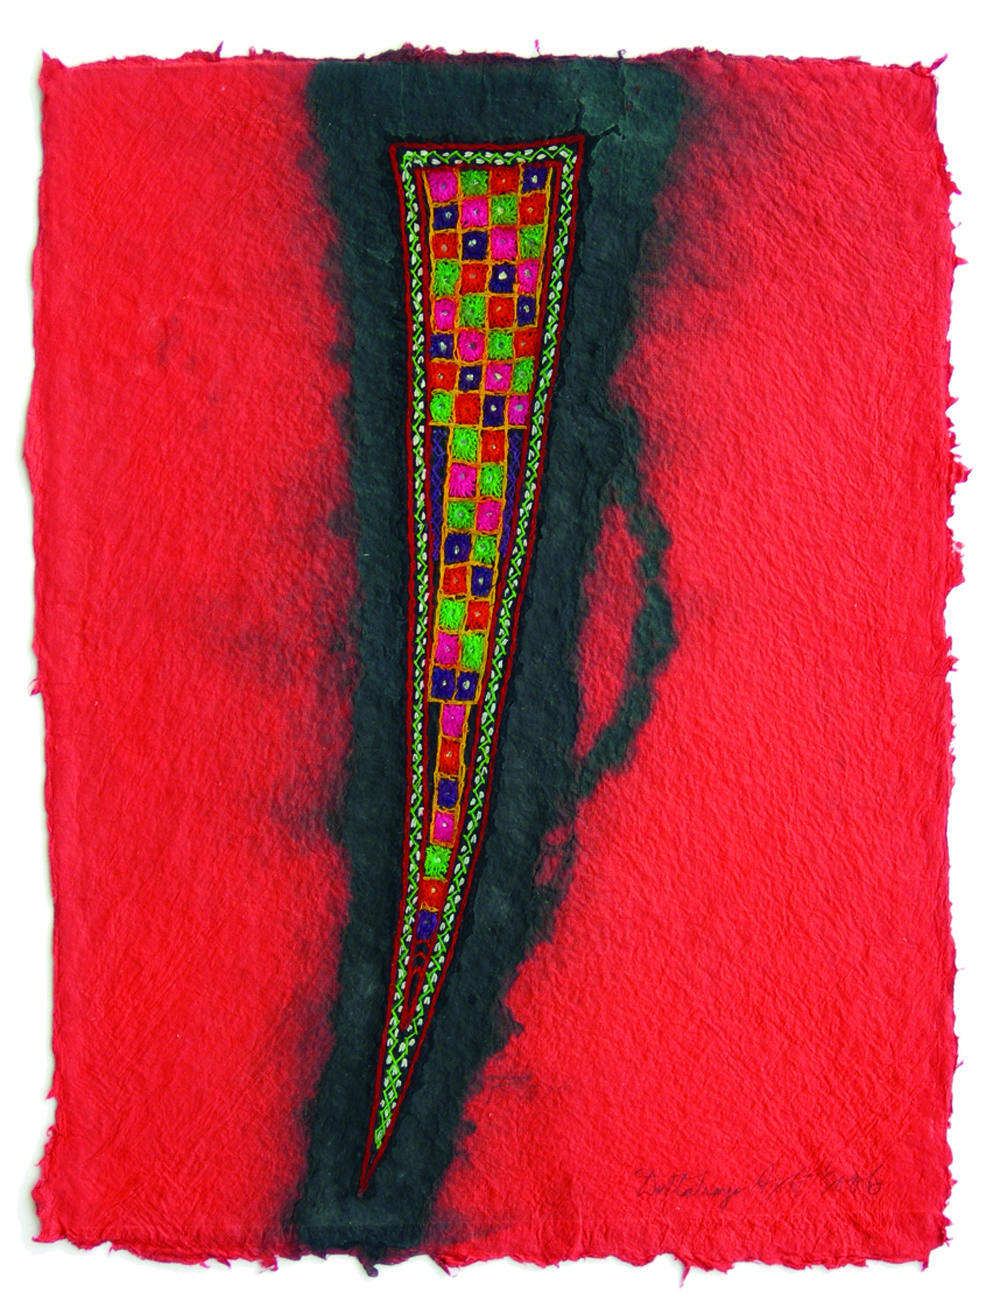 HOLSTER by Dattatraya Apte, Abstract Painting, Mixed Media on Paper, Red color